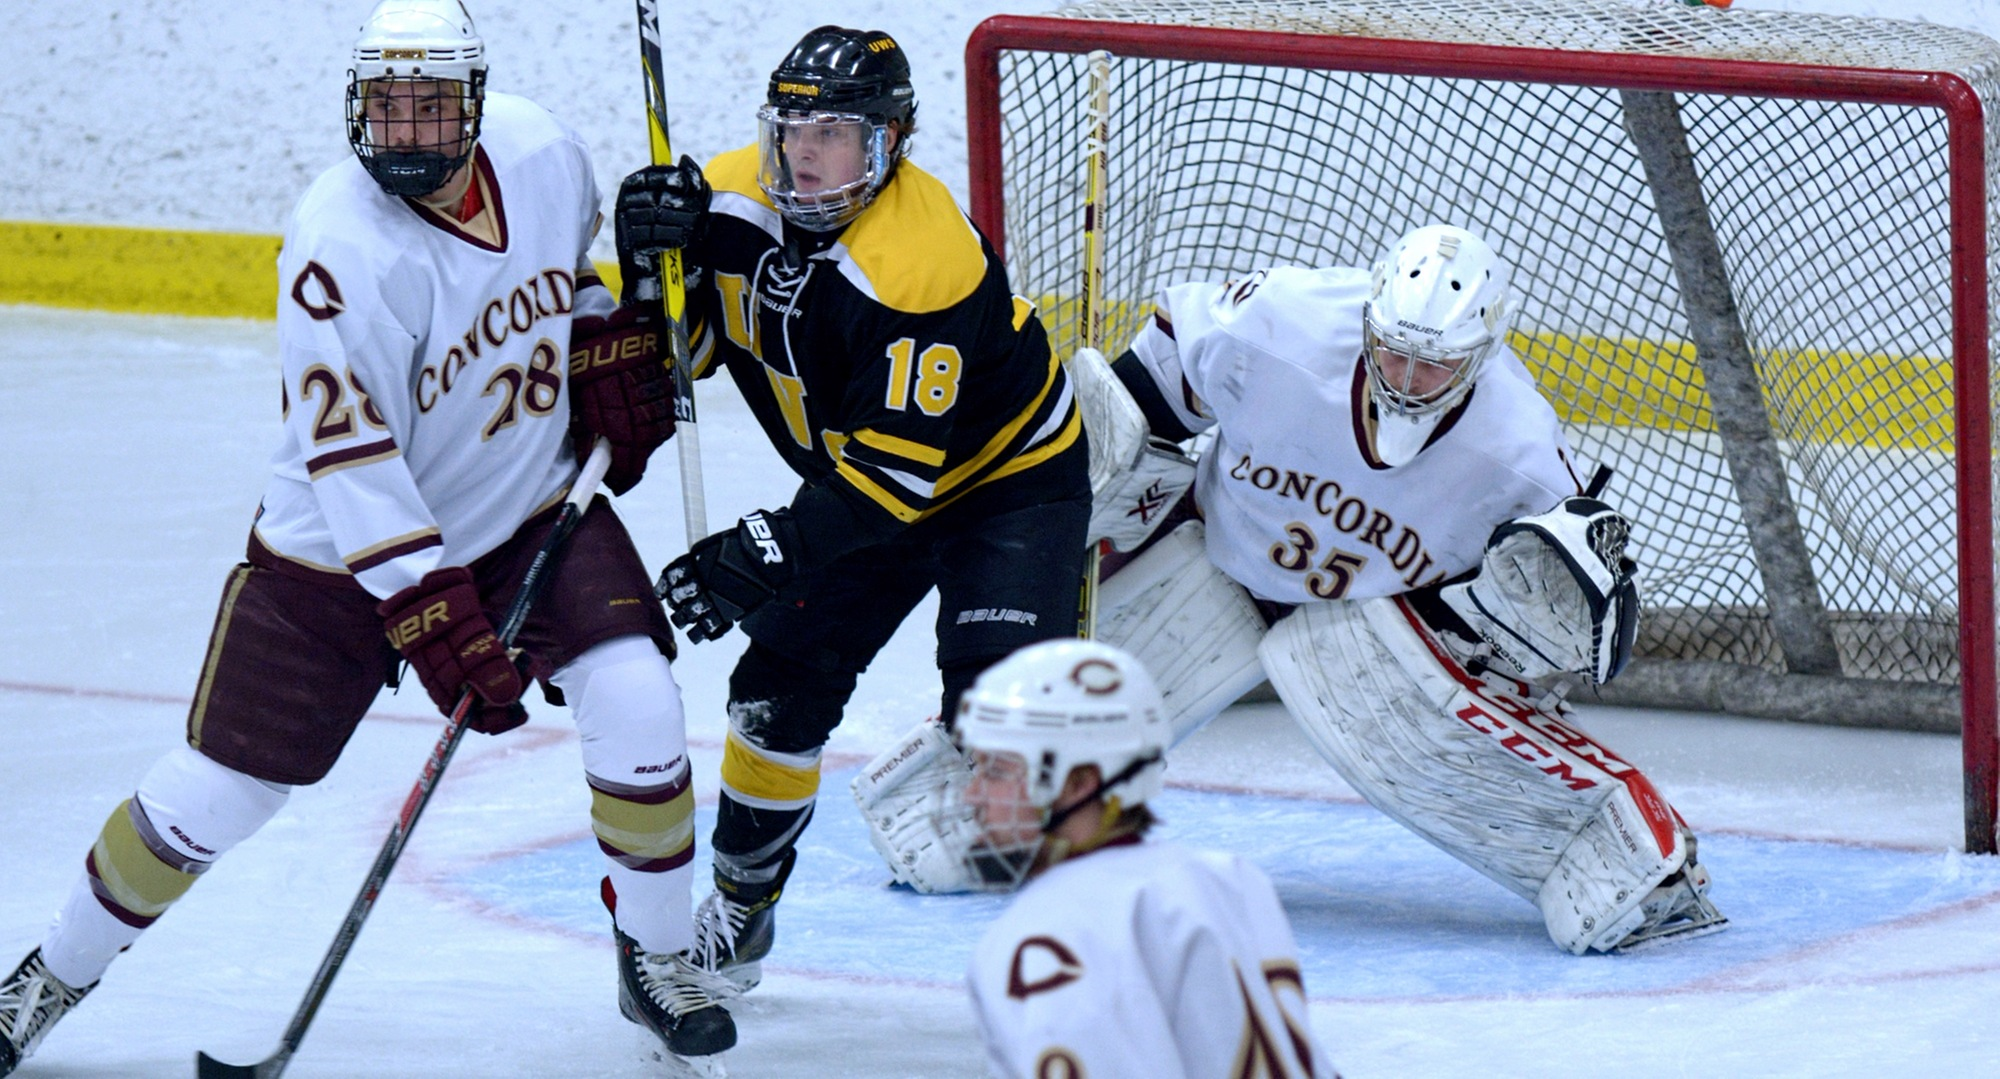 Sophomore defenseman Turk Scatliff ties up  a Wis.-Superior attacker as goalie Sam Nelson tries to see the puck in the Cobbers' 3-2 win.